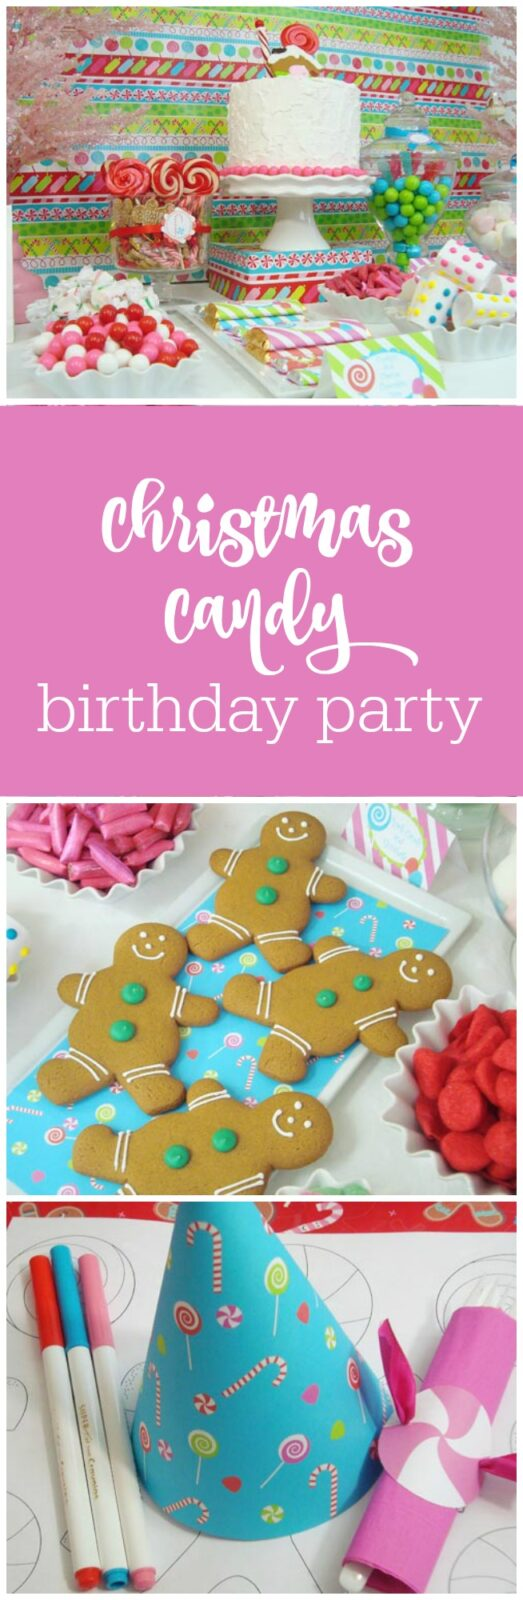 Christmas candy 4-year-old birthday party by We Love Crafty Tracey featured on The Party Teacher